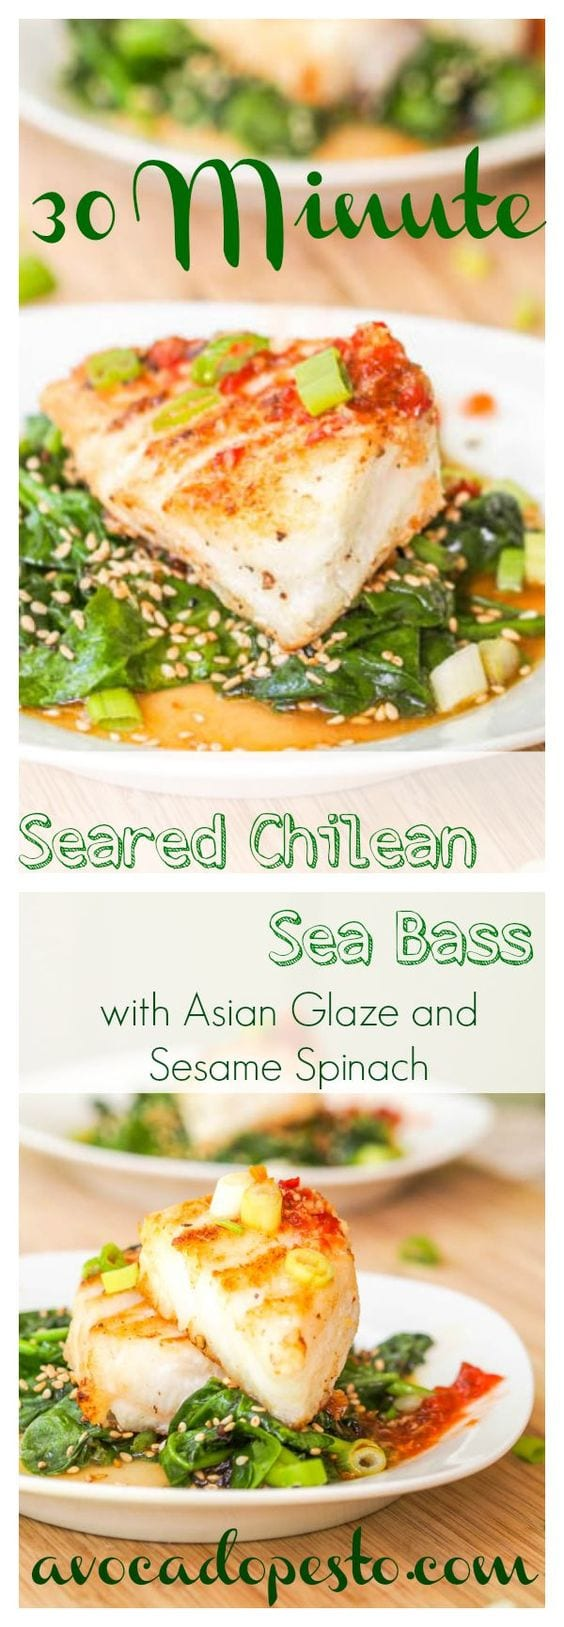 Hands down the most impressive fish recipe I have ever made. 30 minute Seared Chilean sea bass fillets served atop lightly wilted sesame spinach and drizzled with a Vietnamese inspired sweet, sour, spicy, salty glaze. You will be amazed how easy it is to prepare a 5 star meal. Gluten Free and Dairy Free. #fish #dinner #seafood #healthy #asian #glutenfree